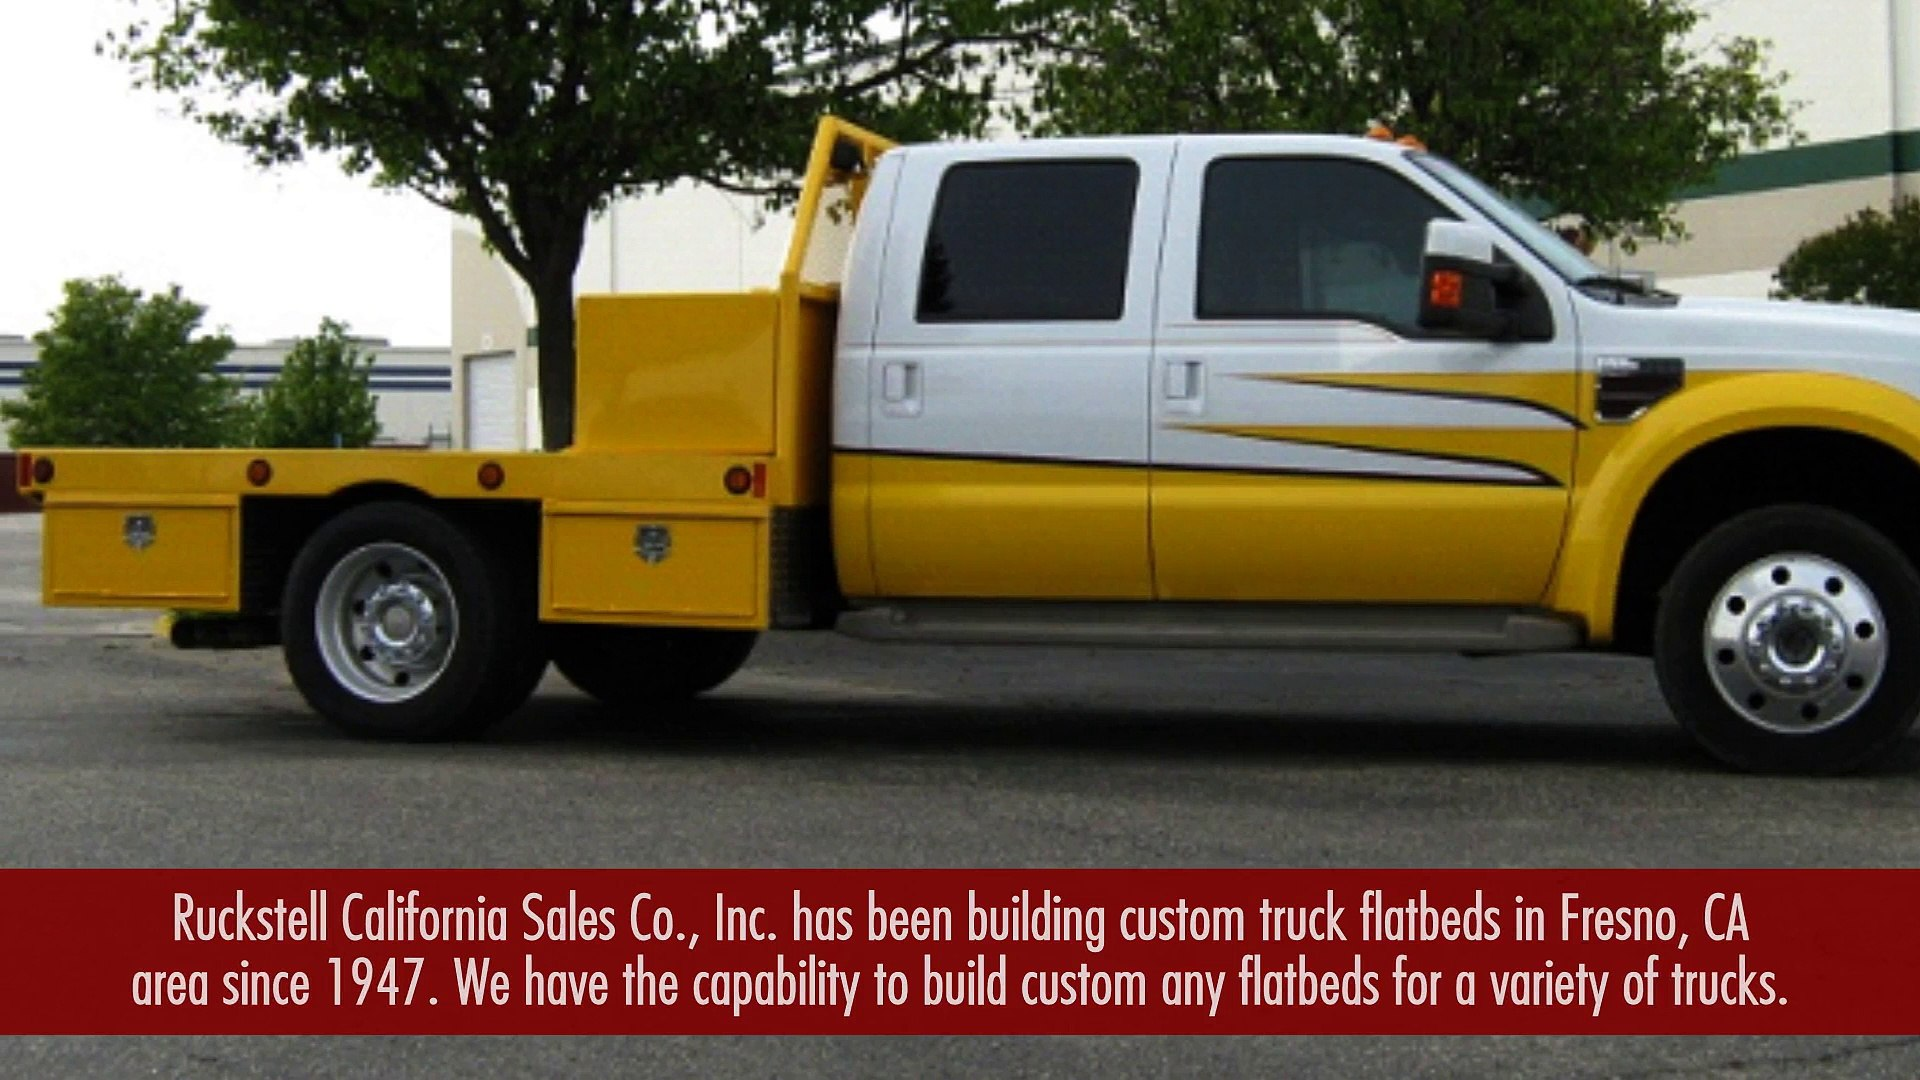 Custom Built Flatbed For Trucks In Fresno Ca Video Dailymotion